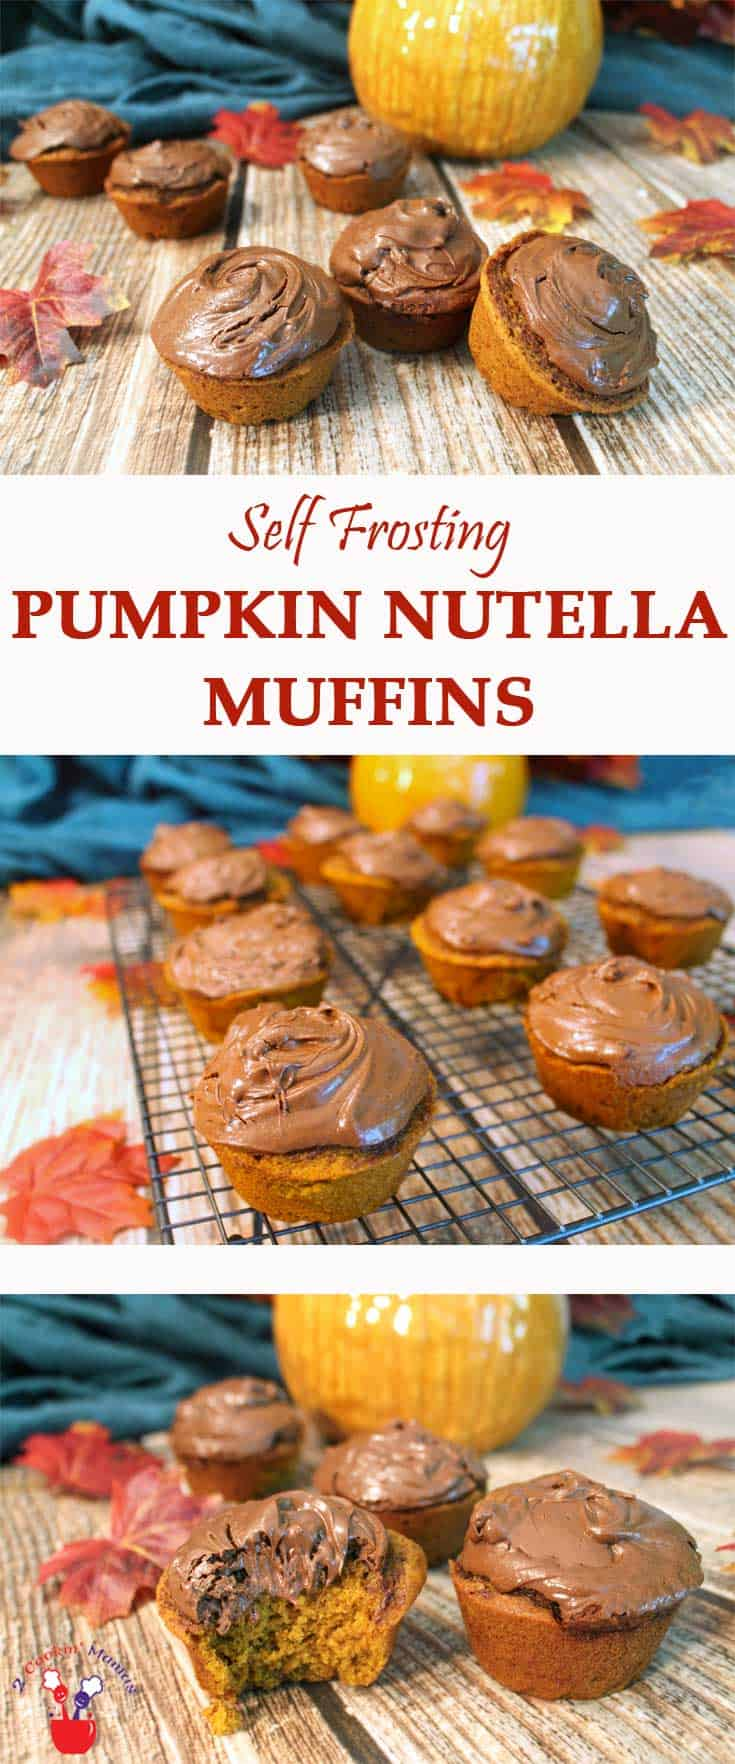 Self Frosting Pumpkin Nutella Muffins | 2 Cookin Mamas Moist pumpkin pie flavored muffins that are super easy to make and are baked with the Nutella frosting already on them! #recipe #dessert